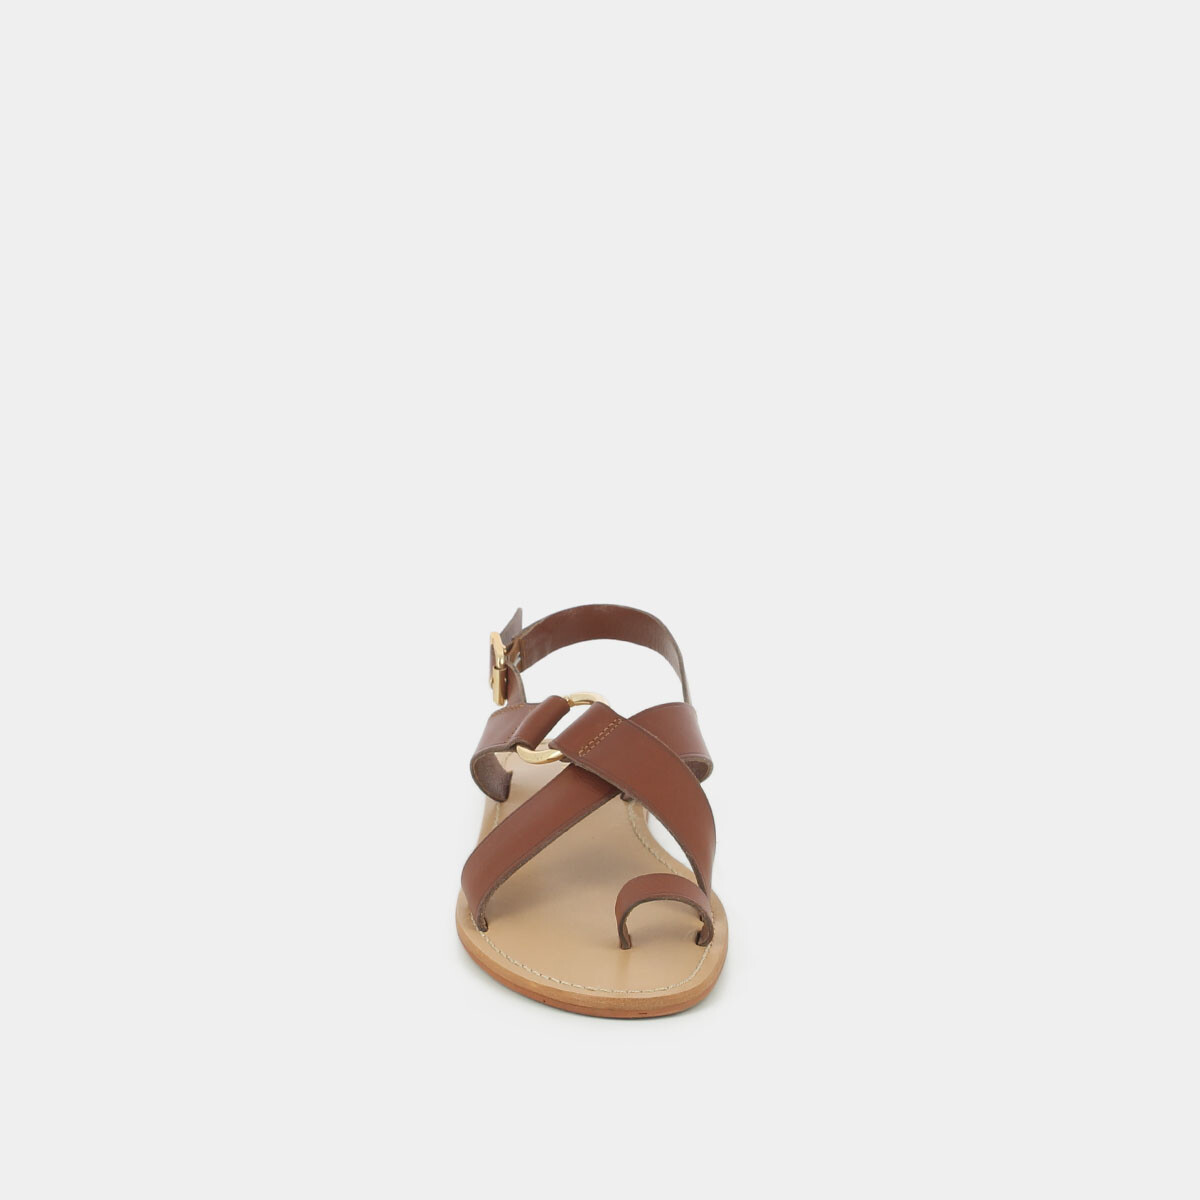 Cross-strap sandals and ring in cognac leather